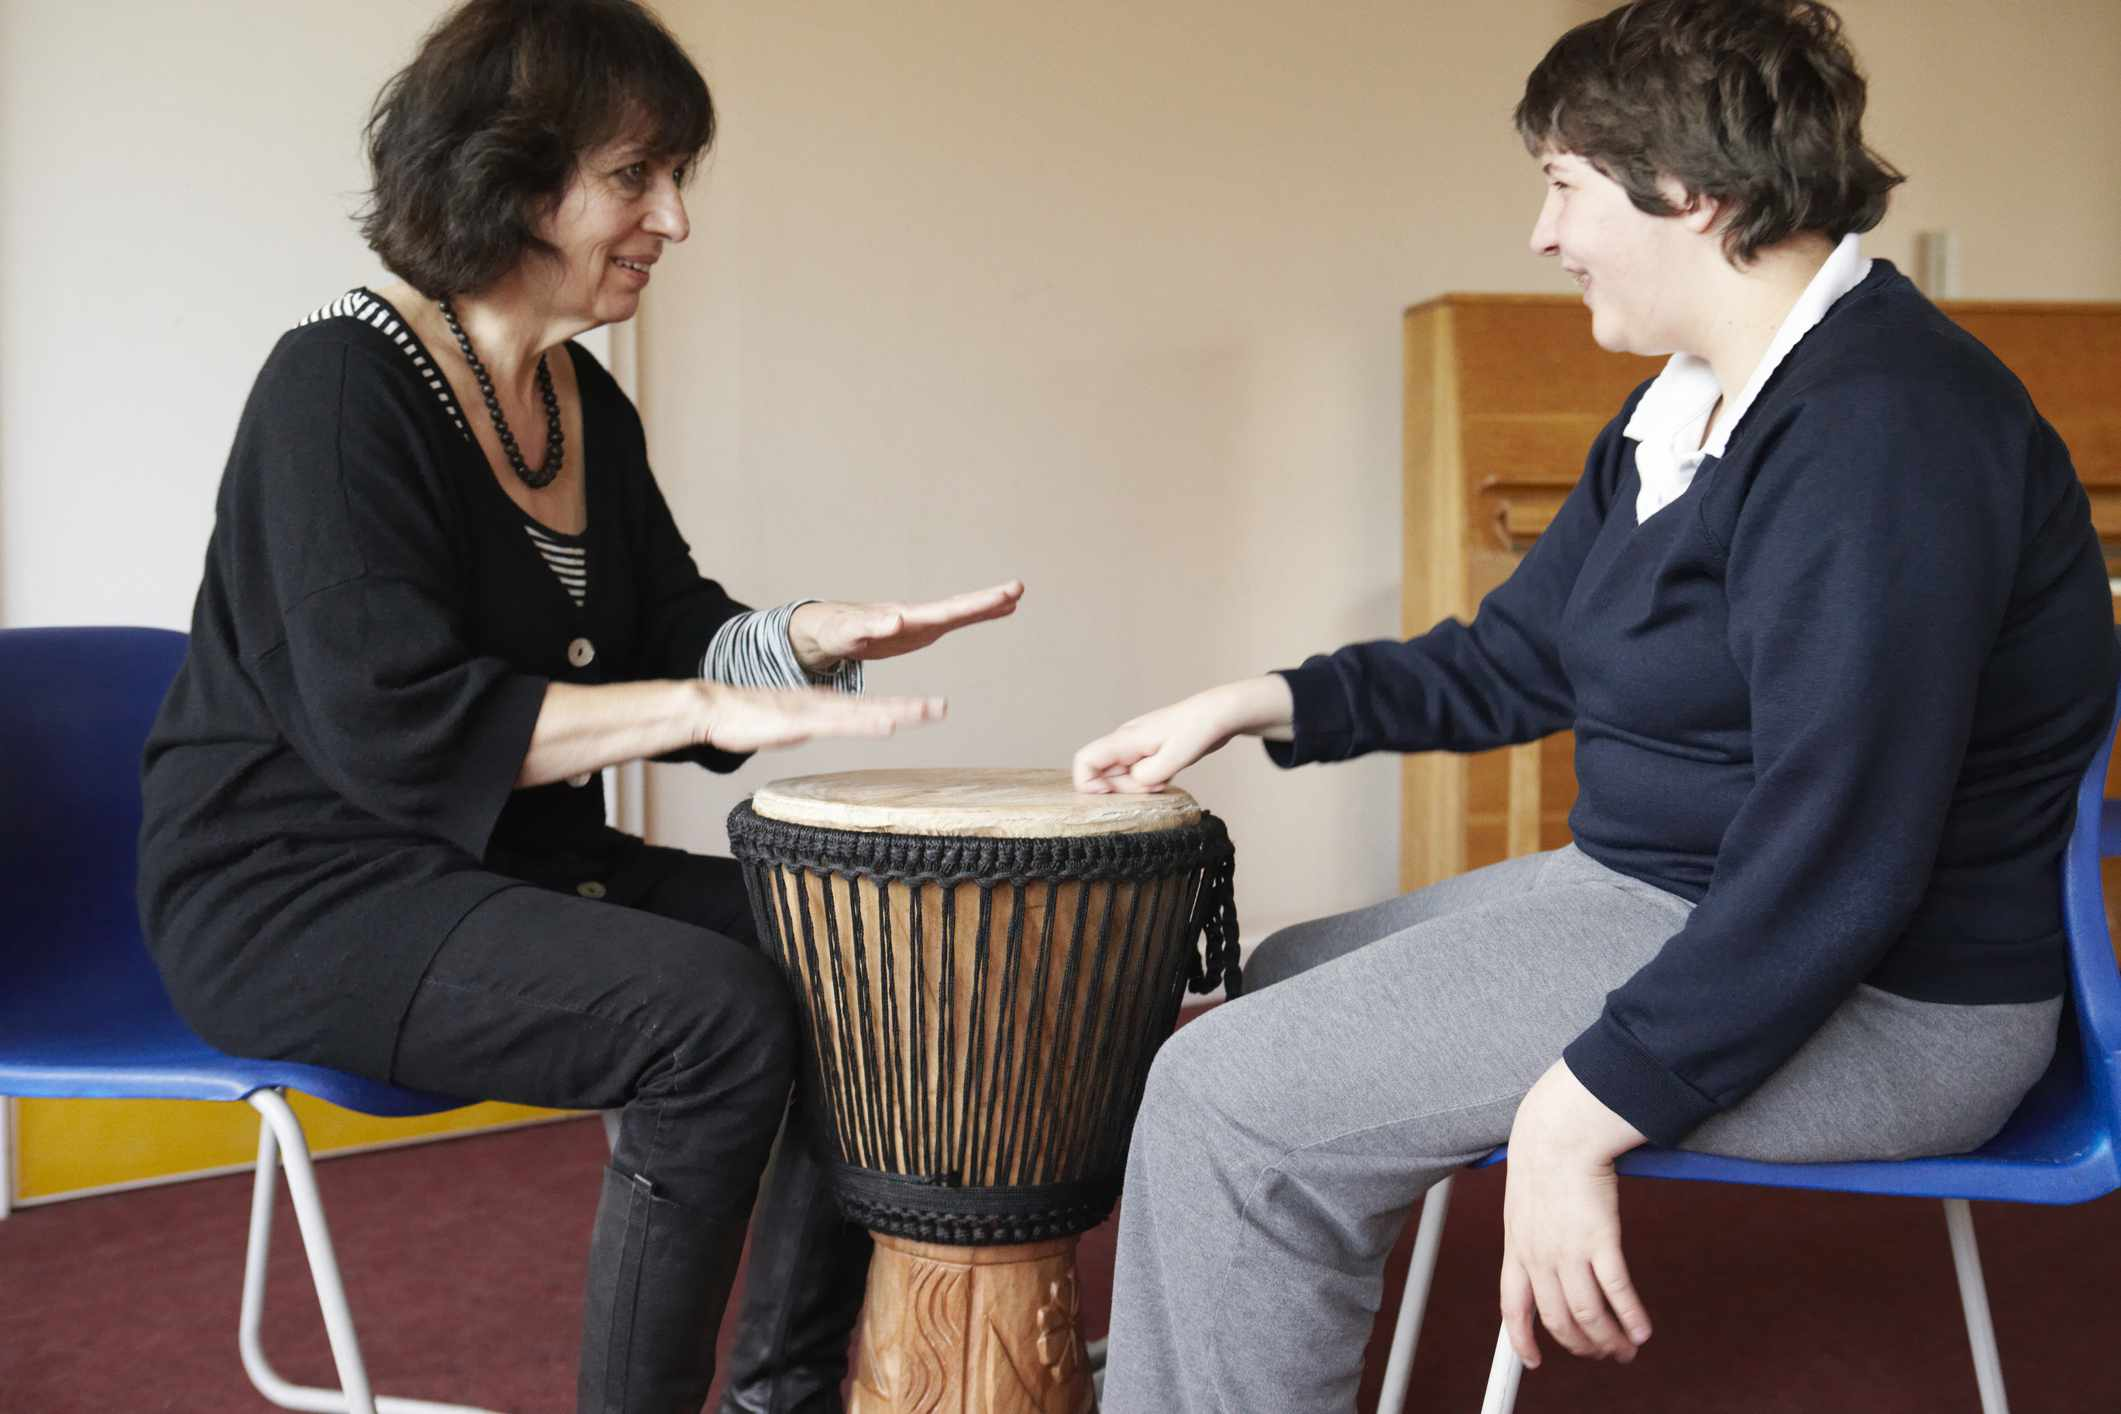 A music therapist and her patient